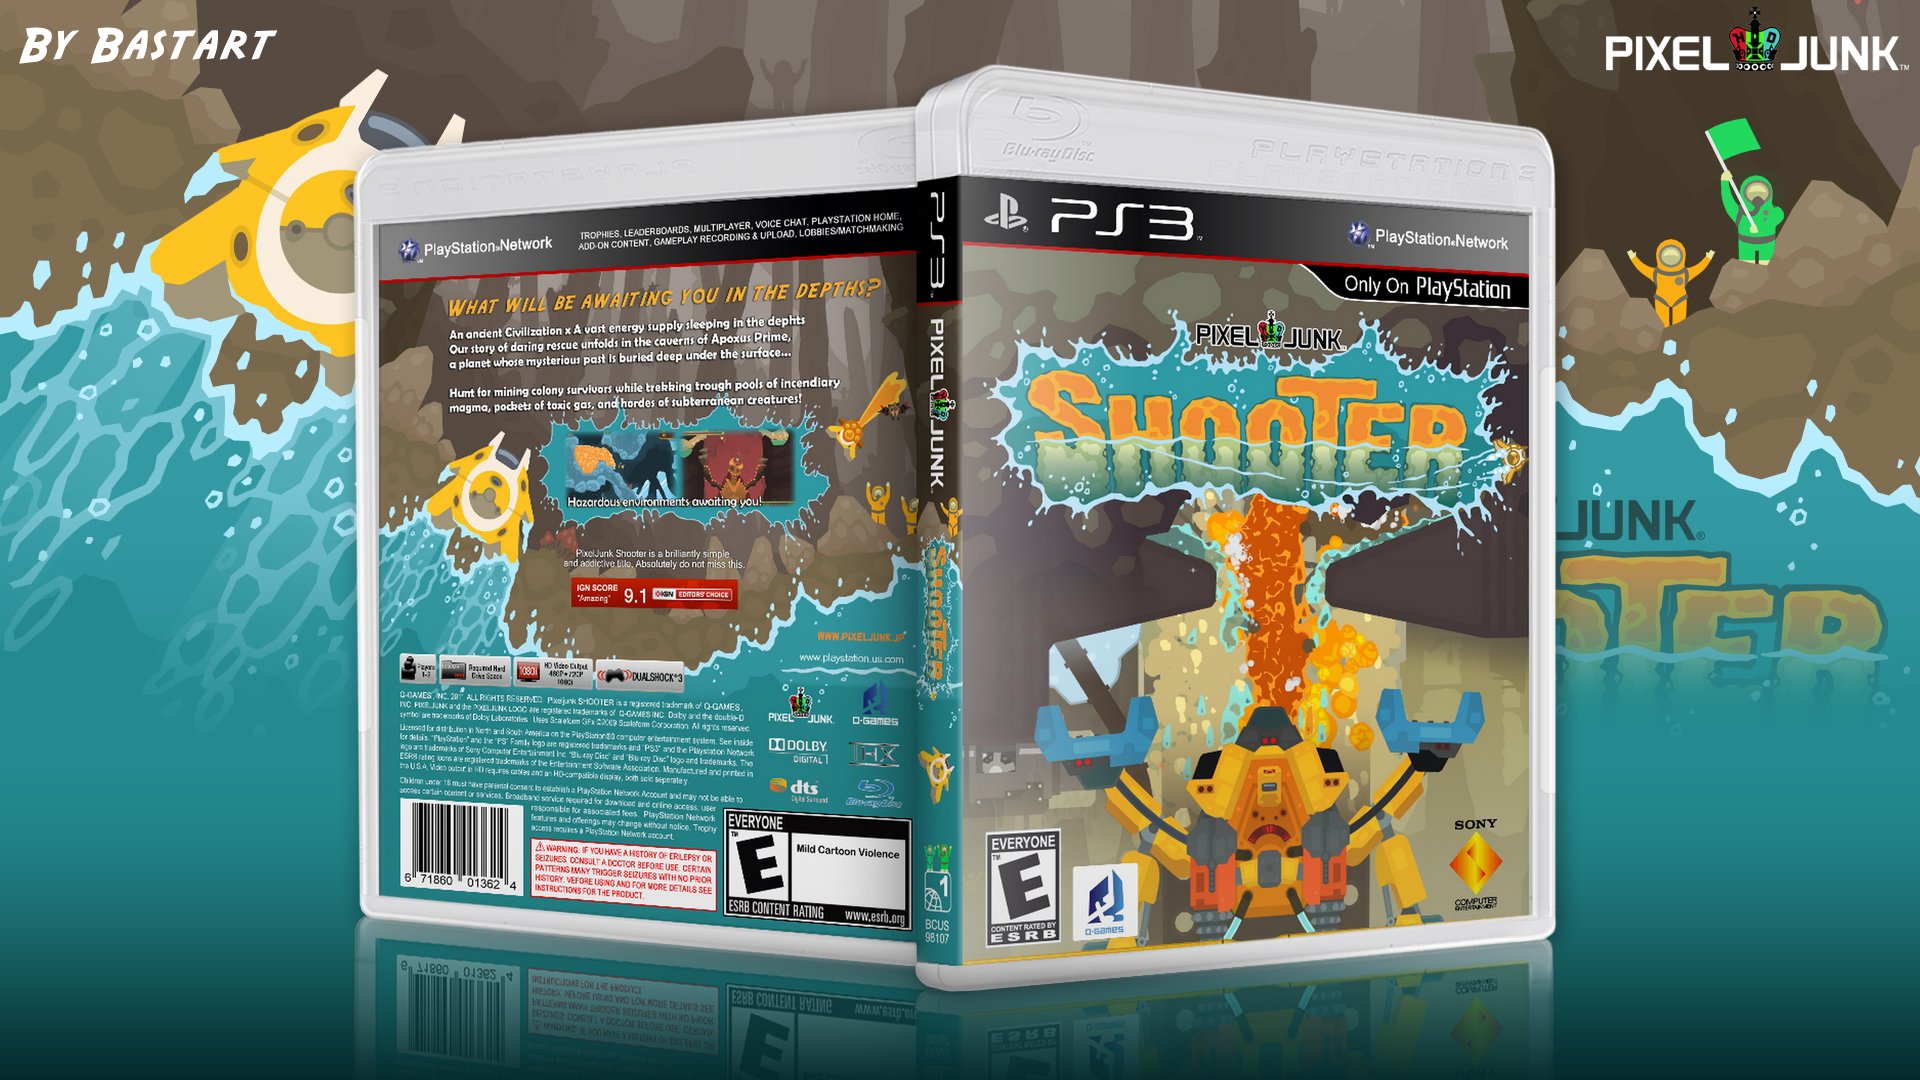 Pixeljunk: Shooter box cover